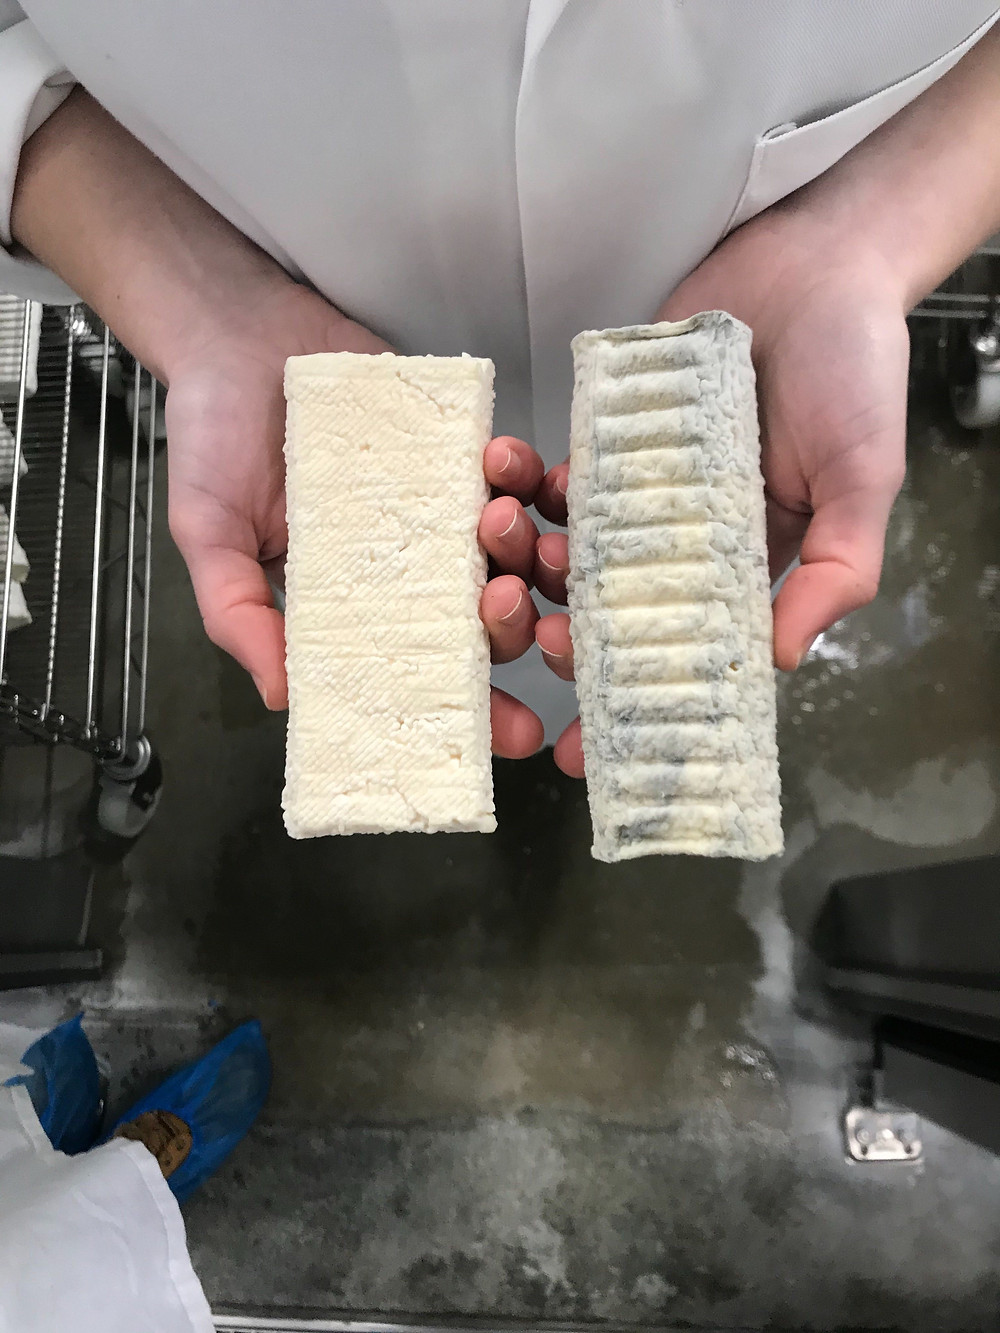 Cheese at different stages of maturing process